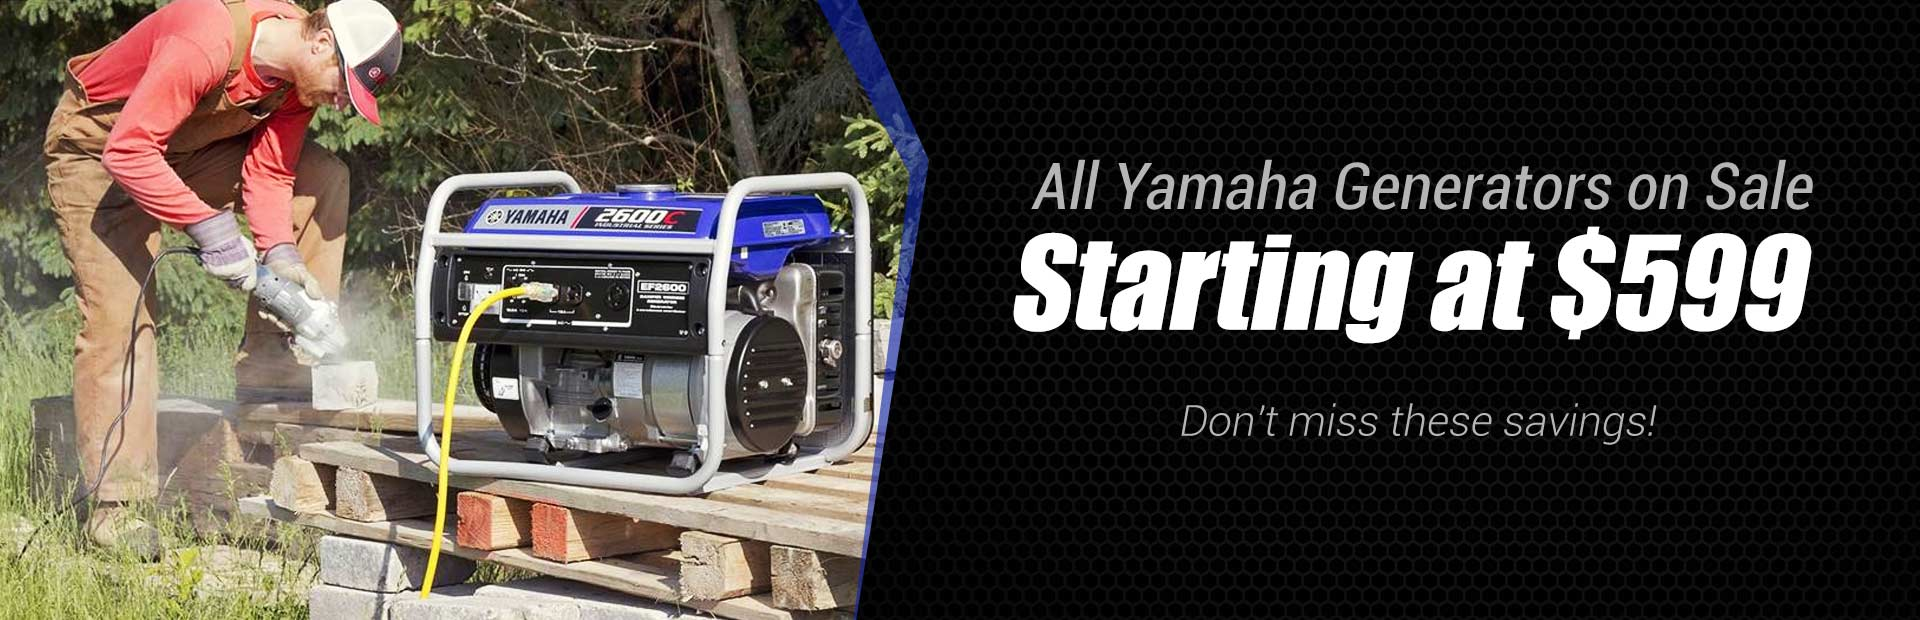 All Yamaha Generators on Sale: Don't miss these savings!